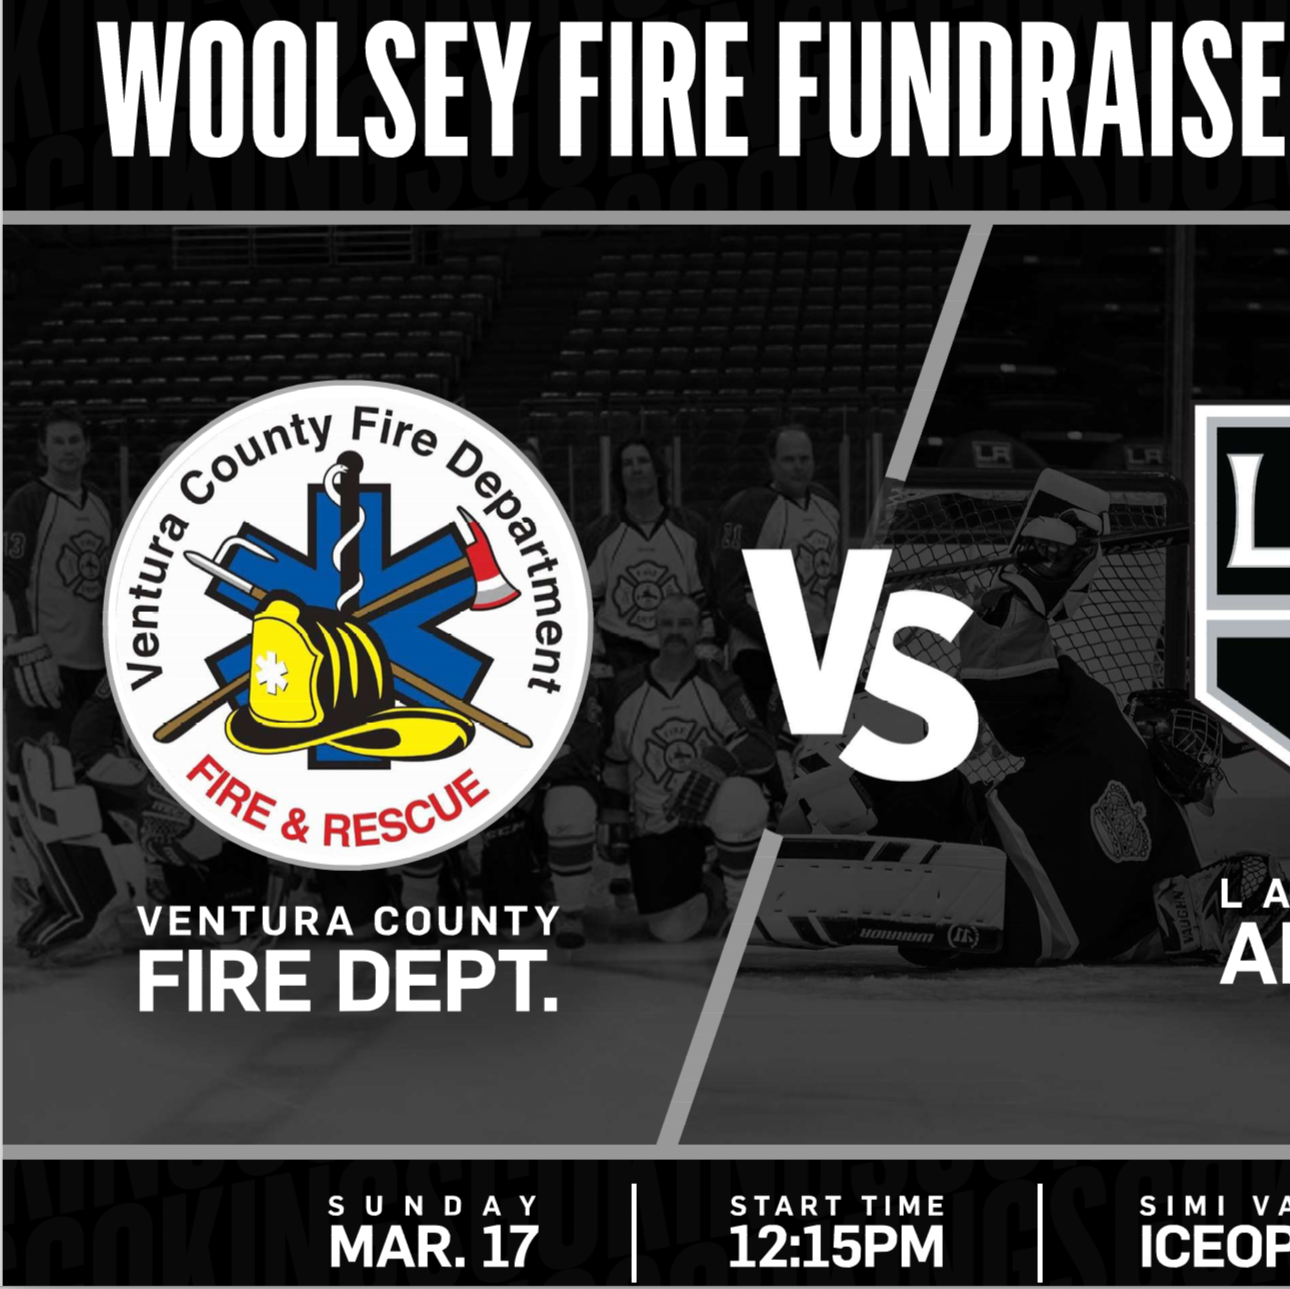 Kings alumni to play Ventura County Fire in Woolsey Fire fundraiser game